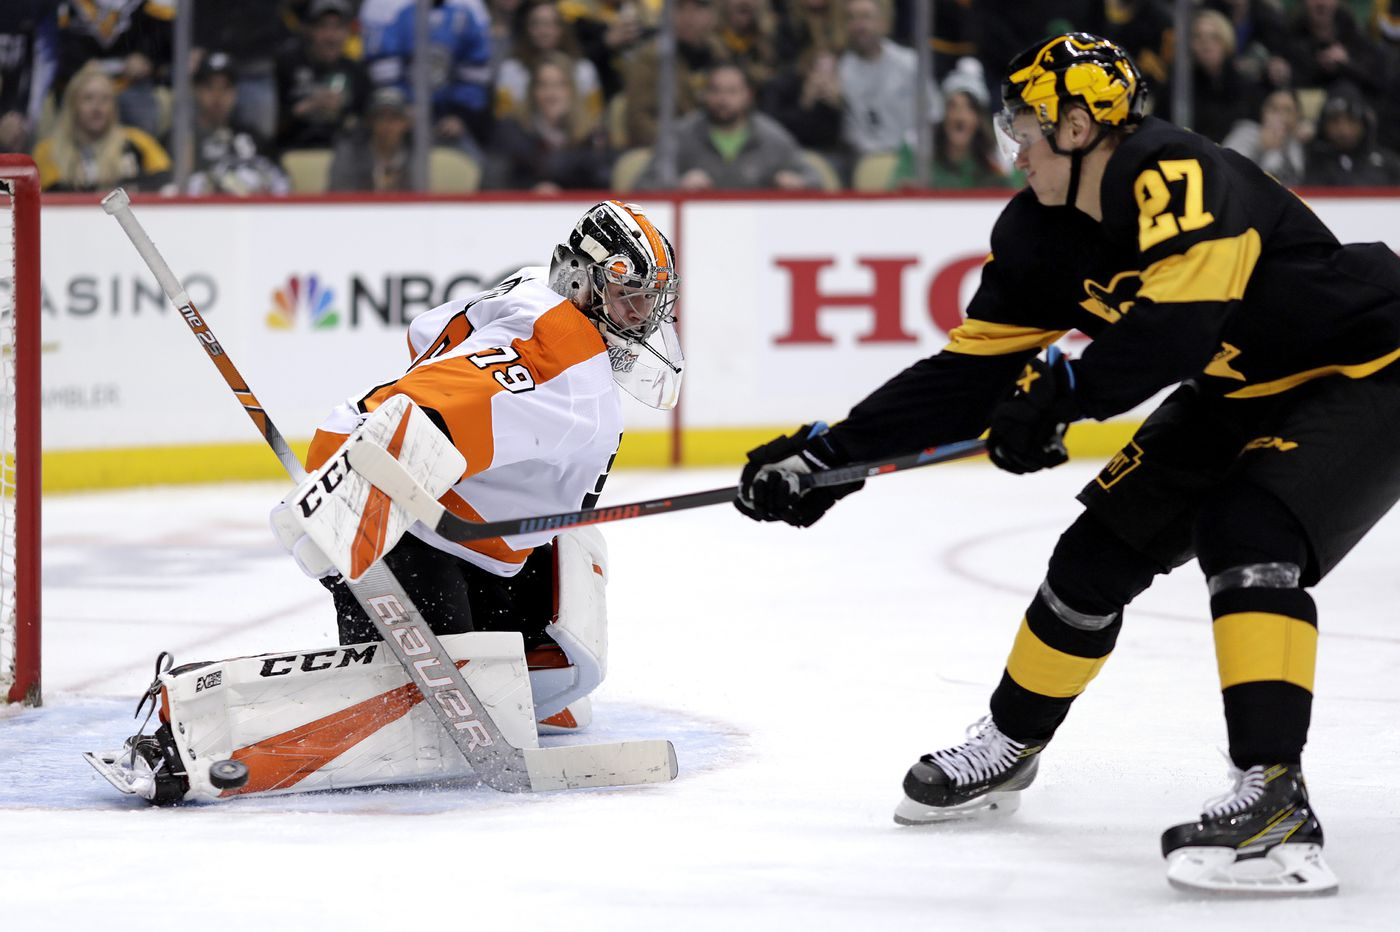 Flyers stun Penguins behind Sean Couturier's late overtime goal, Carter Hart's brilliant goaltending